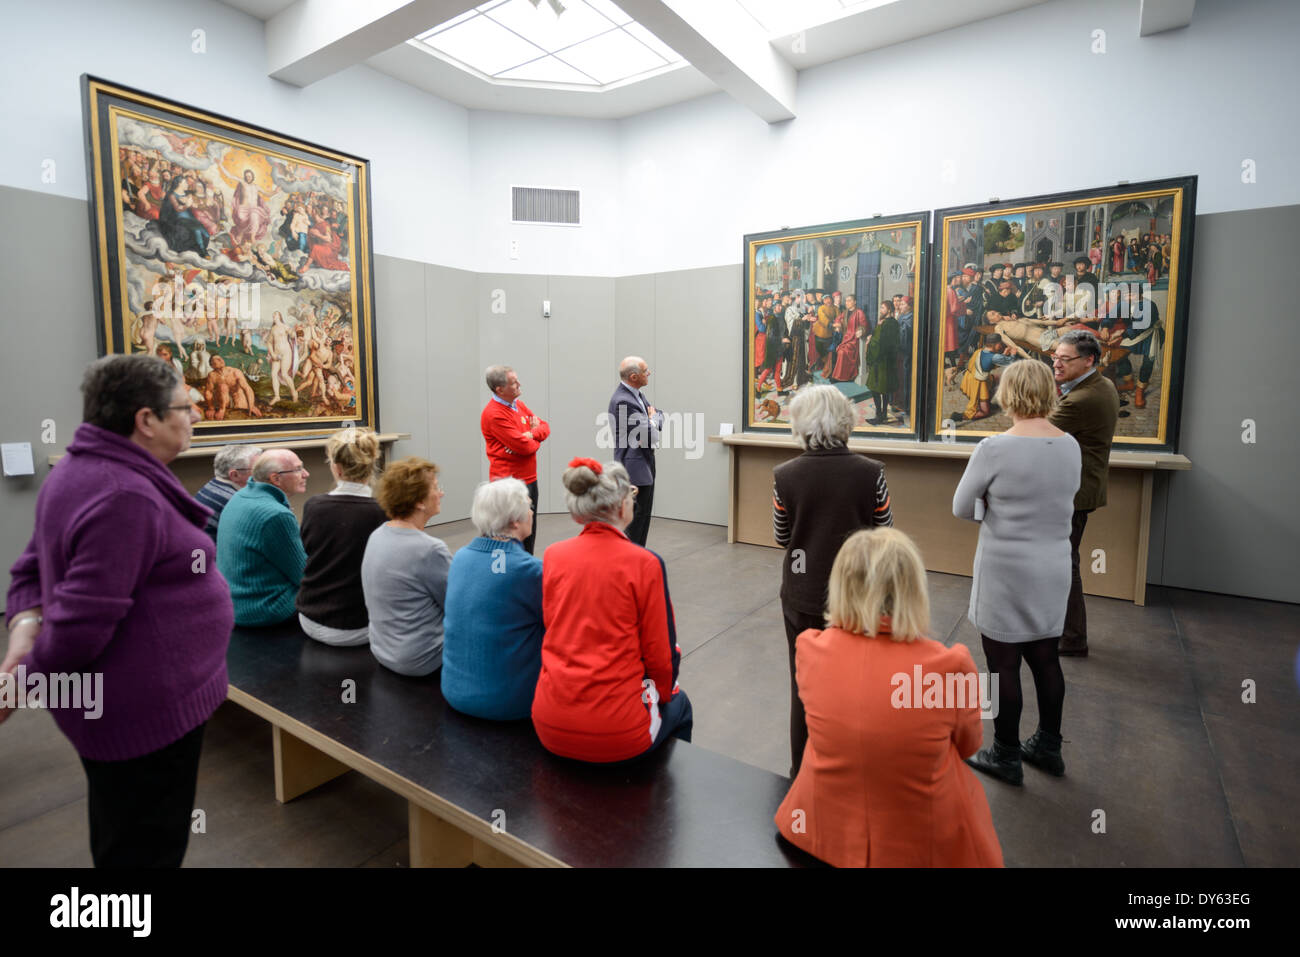 BRUGES, Belgium - Flemish and Belgian painting on display at the Groeningemuseum, a municipal art museum in Bruges, Belgium. The museum is famous for its collection of Flemish Primitive art, along with other masterpieces from other periods. - Stock Image